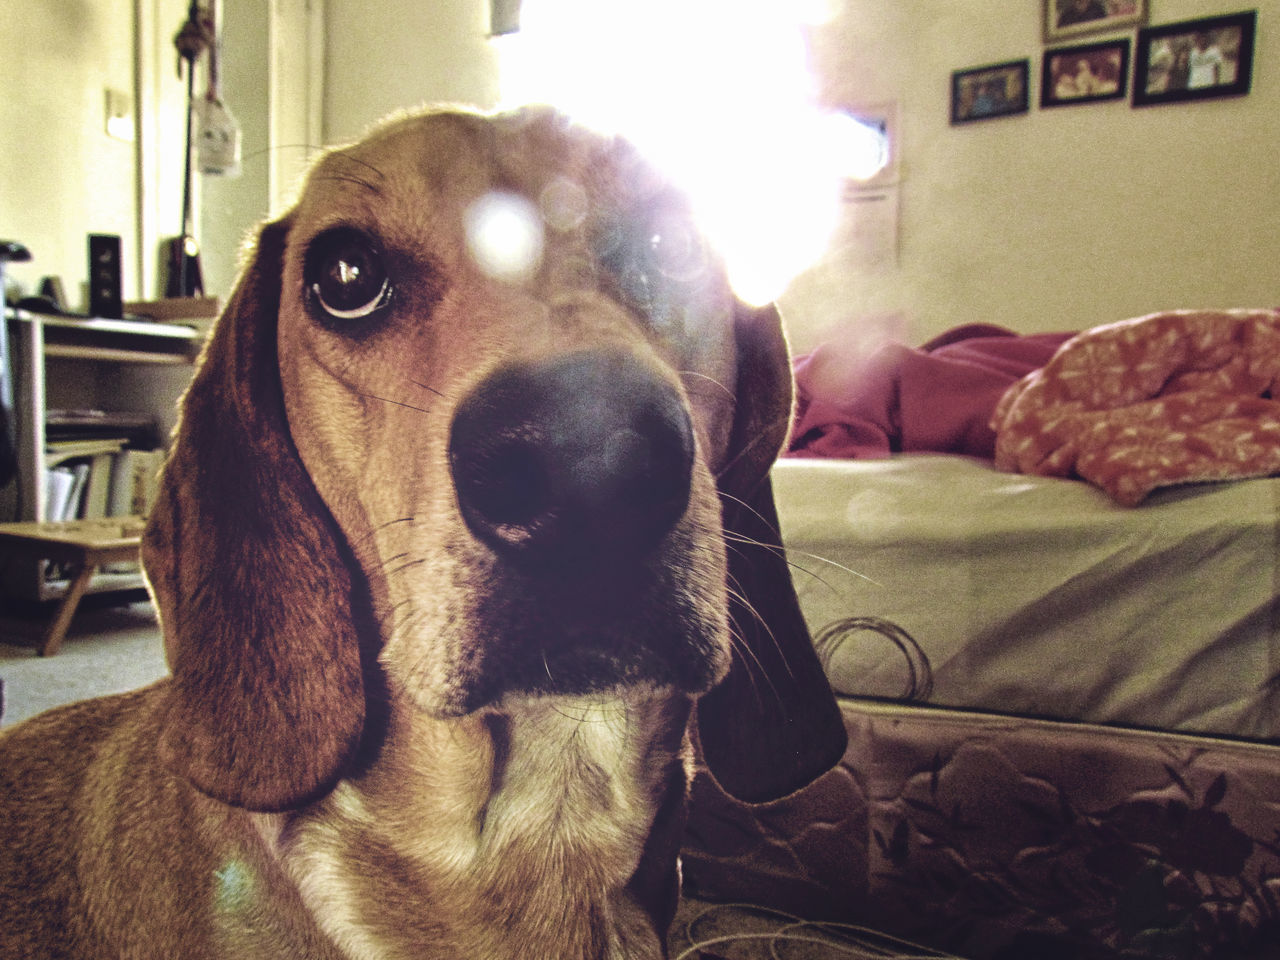 Animal Themes Bassetthound Close-up Dog Domestic Animals Home Interior Indoors  Macro Photography No People One Animal Pets